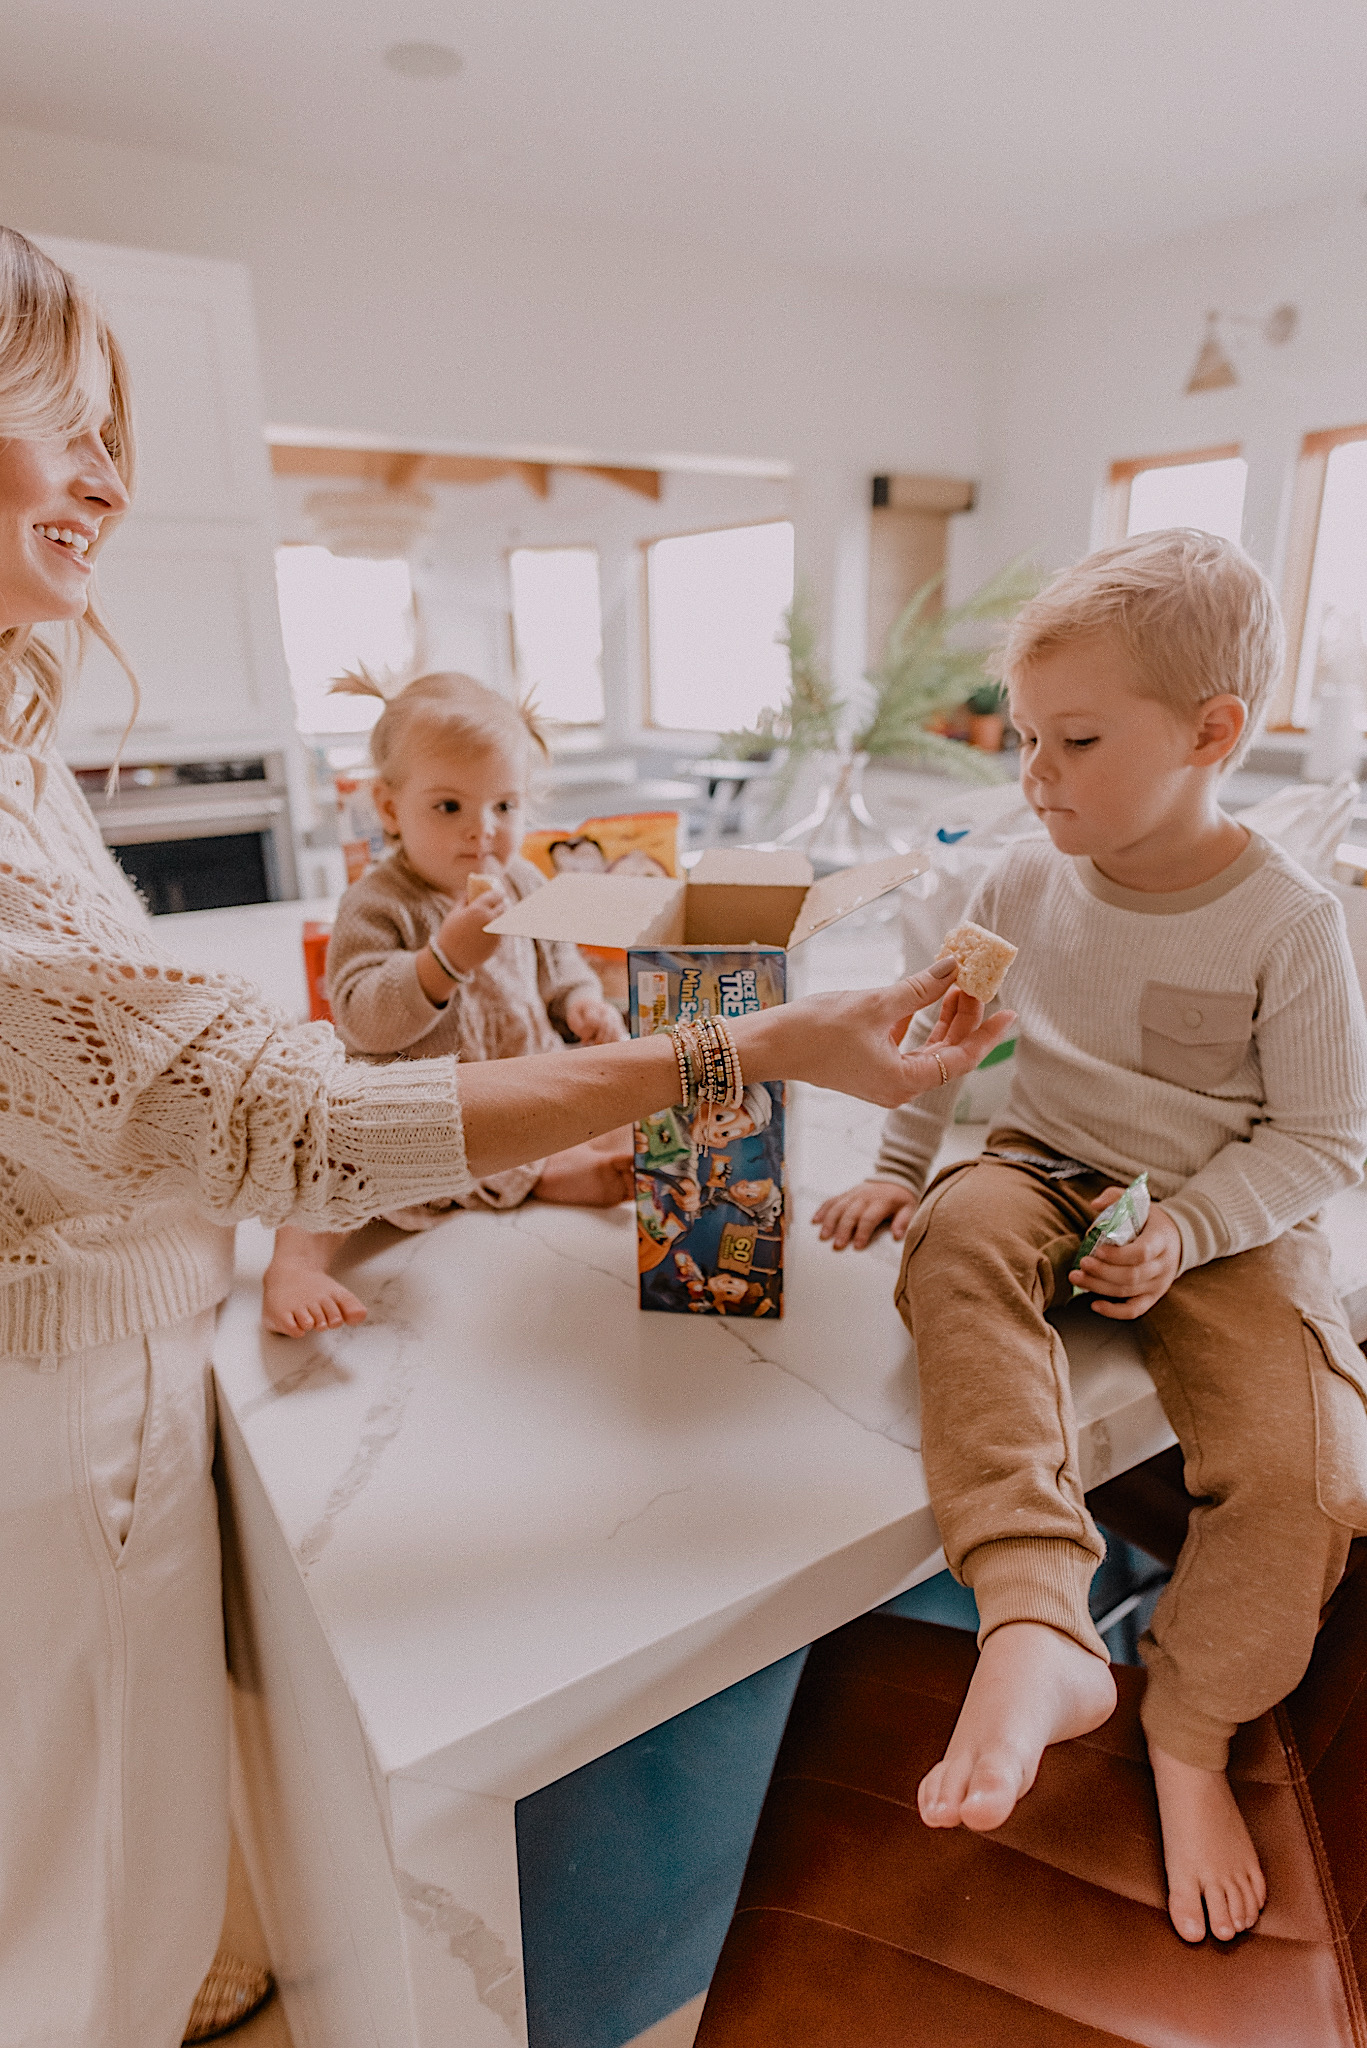 mom hacks saving money and time with walmart+ membership |mom hacks saving money and time with walmart+ membership | Walmart Membership by popular San Diego fashion blog, Navy Grace: image of a mom and her two kids standing around the kitchen island counter and eating rice krispy treats.